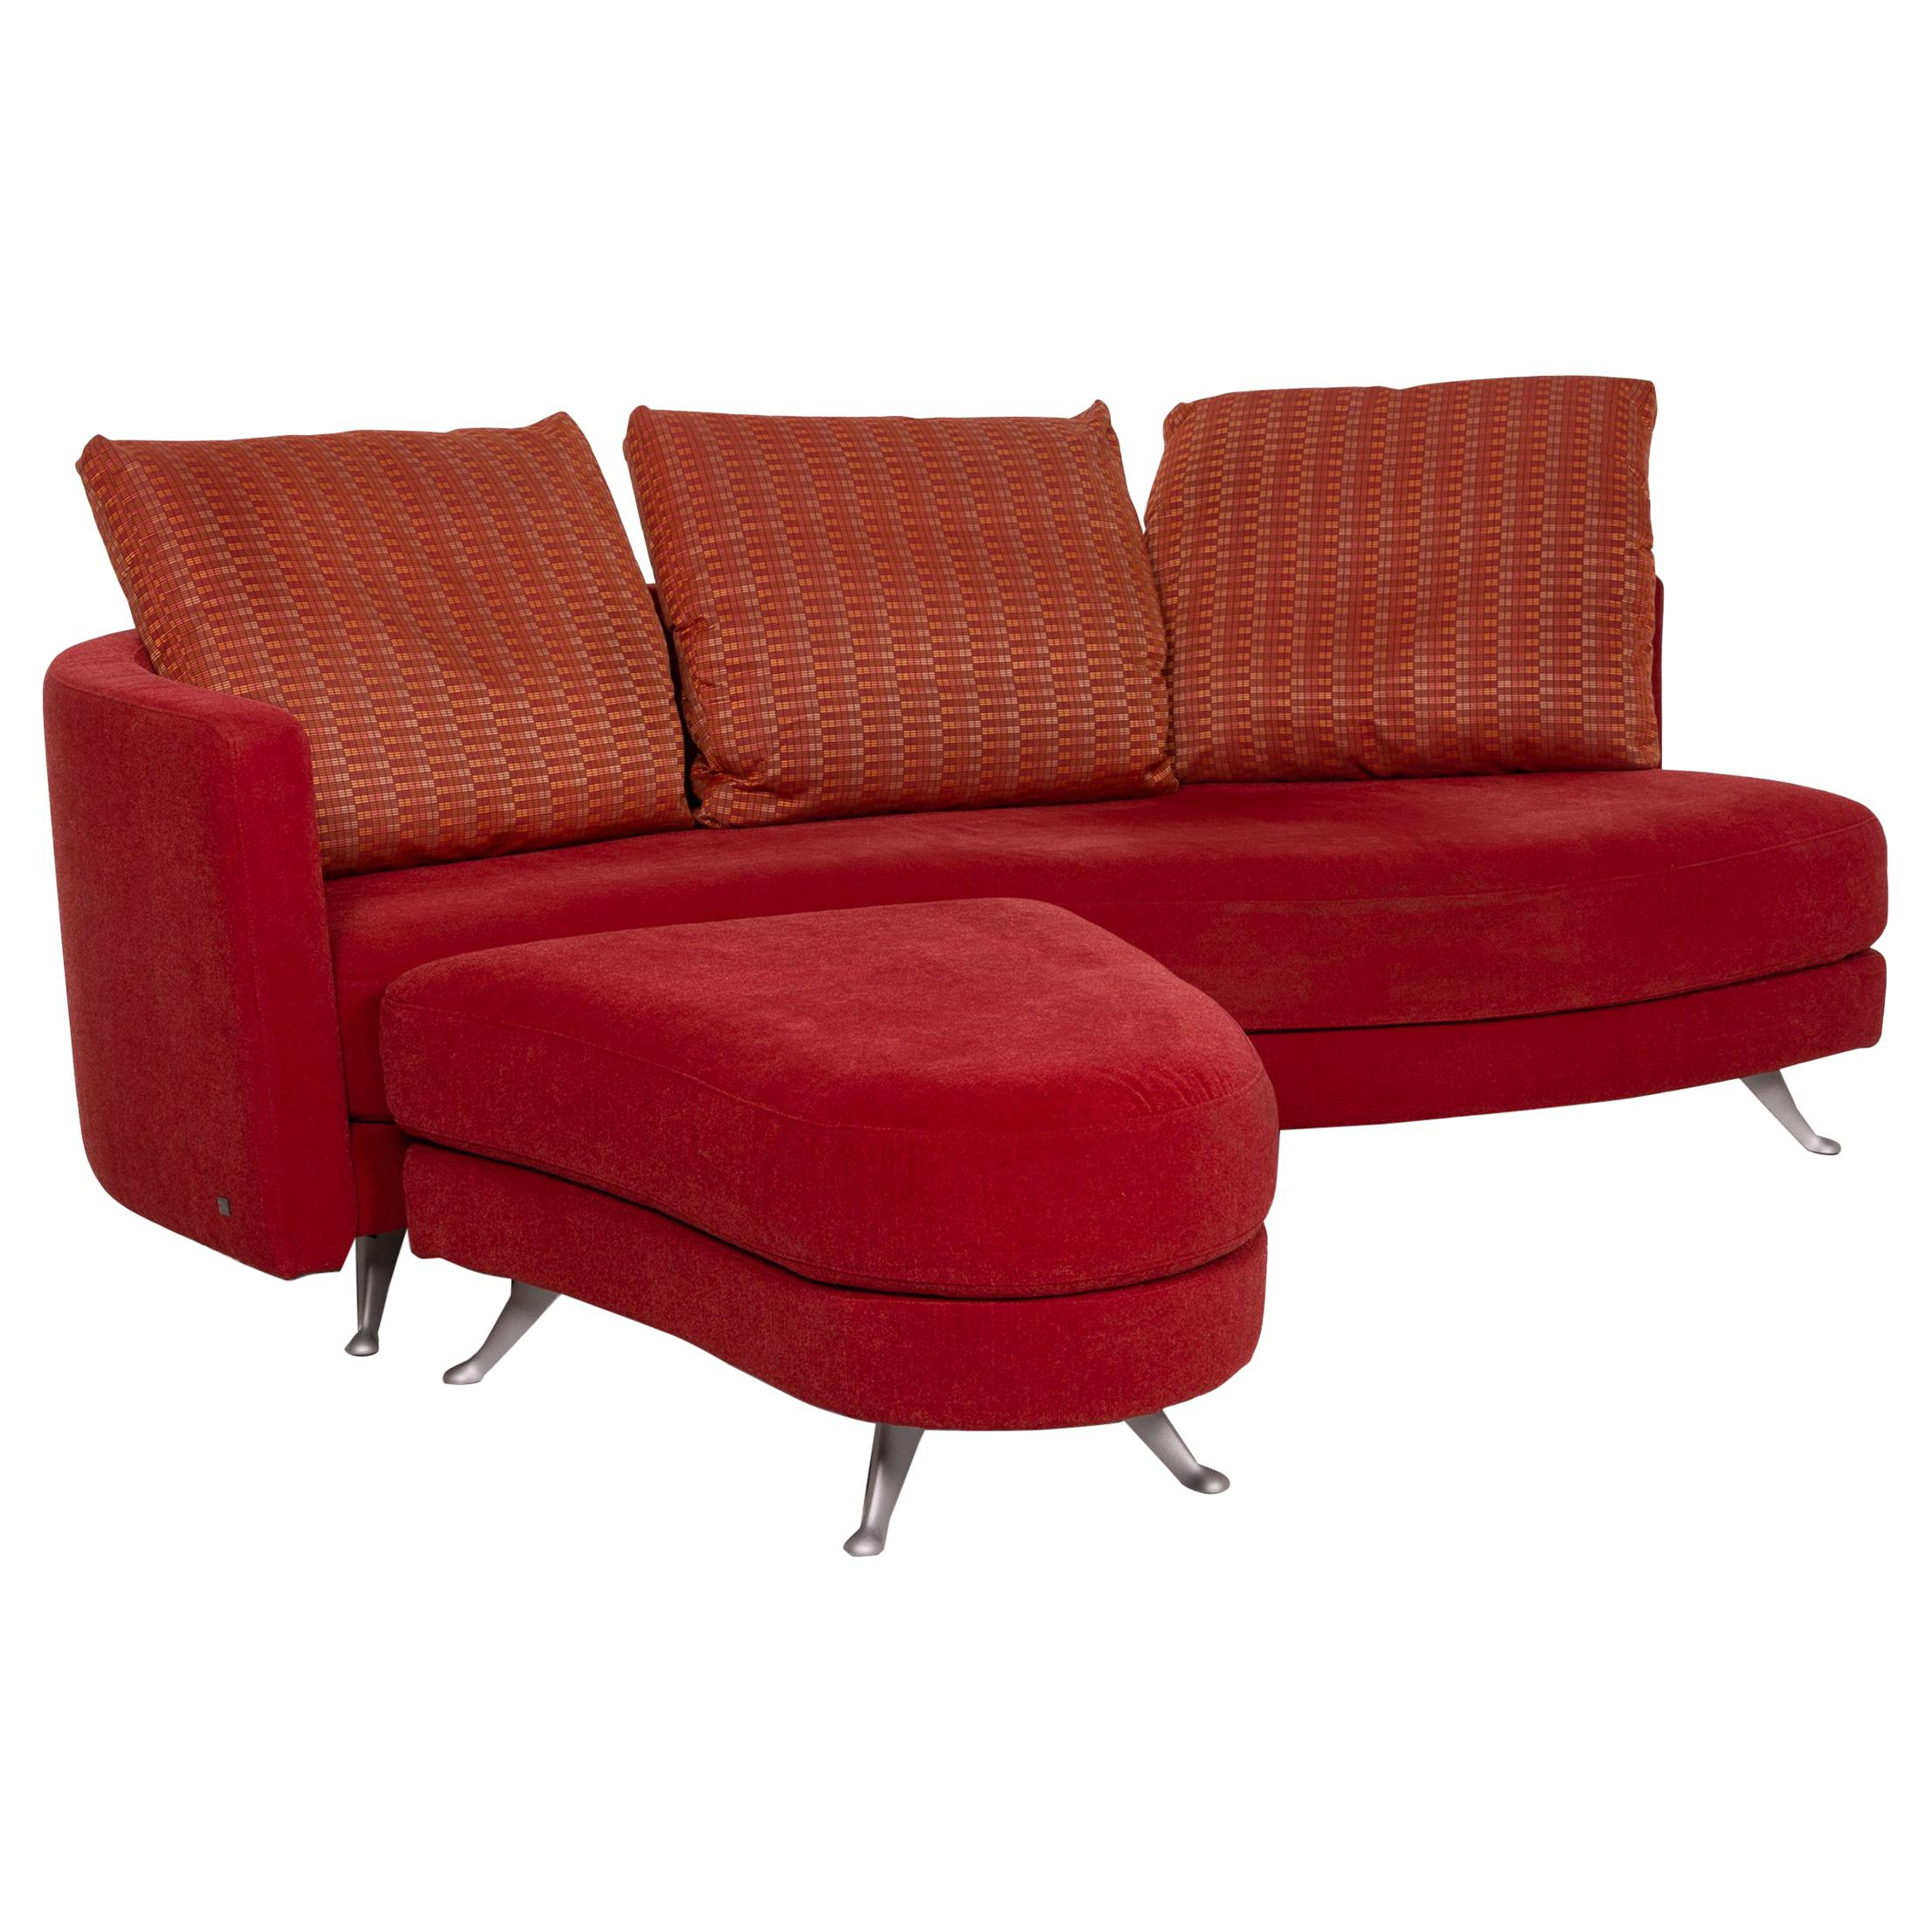 Rolf Benz 2500 Red Three-Seater Fabric Sofa Incl. Ottoman Set